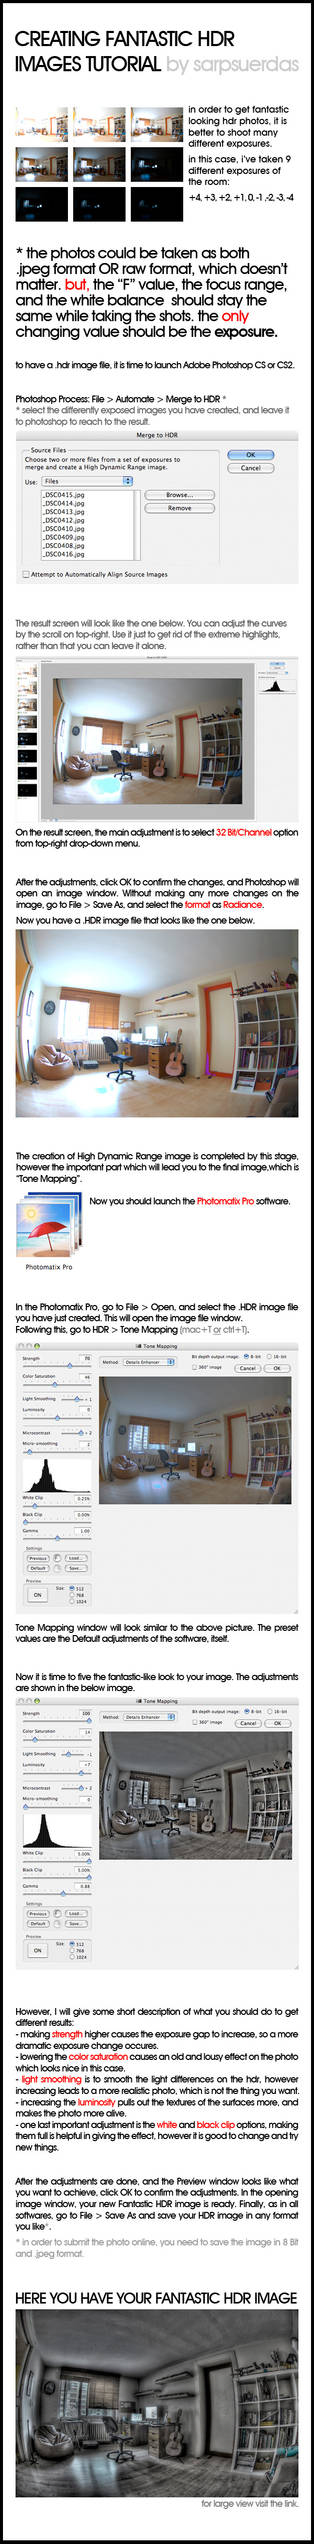 f-hdr tutorial by srpsrds